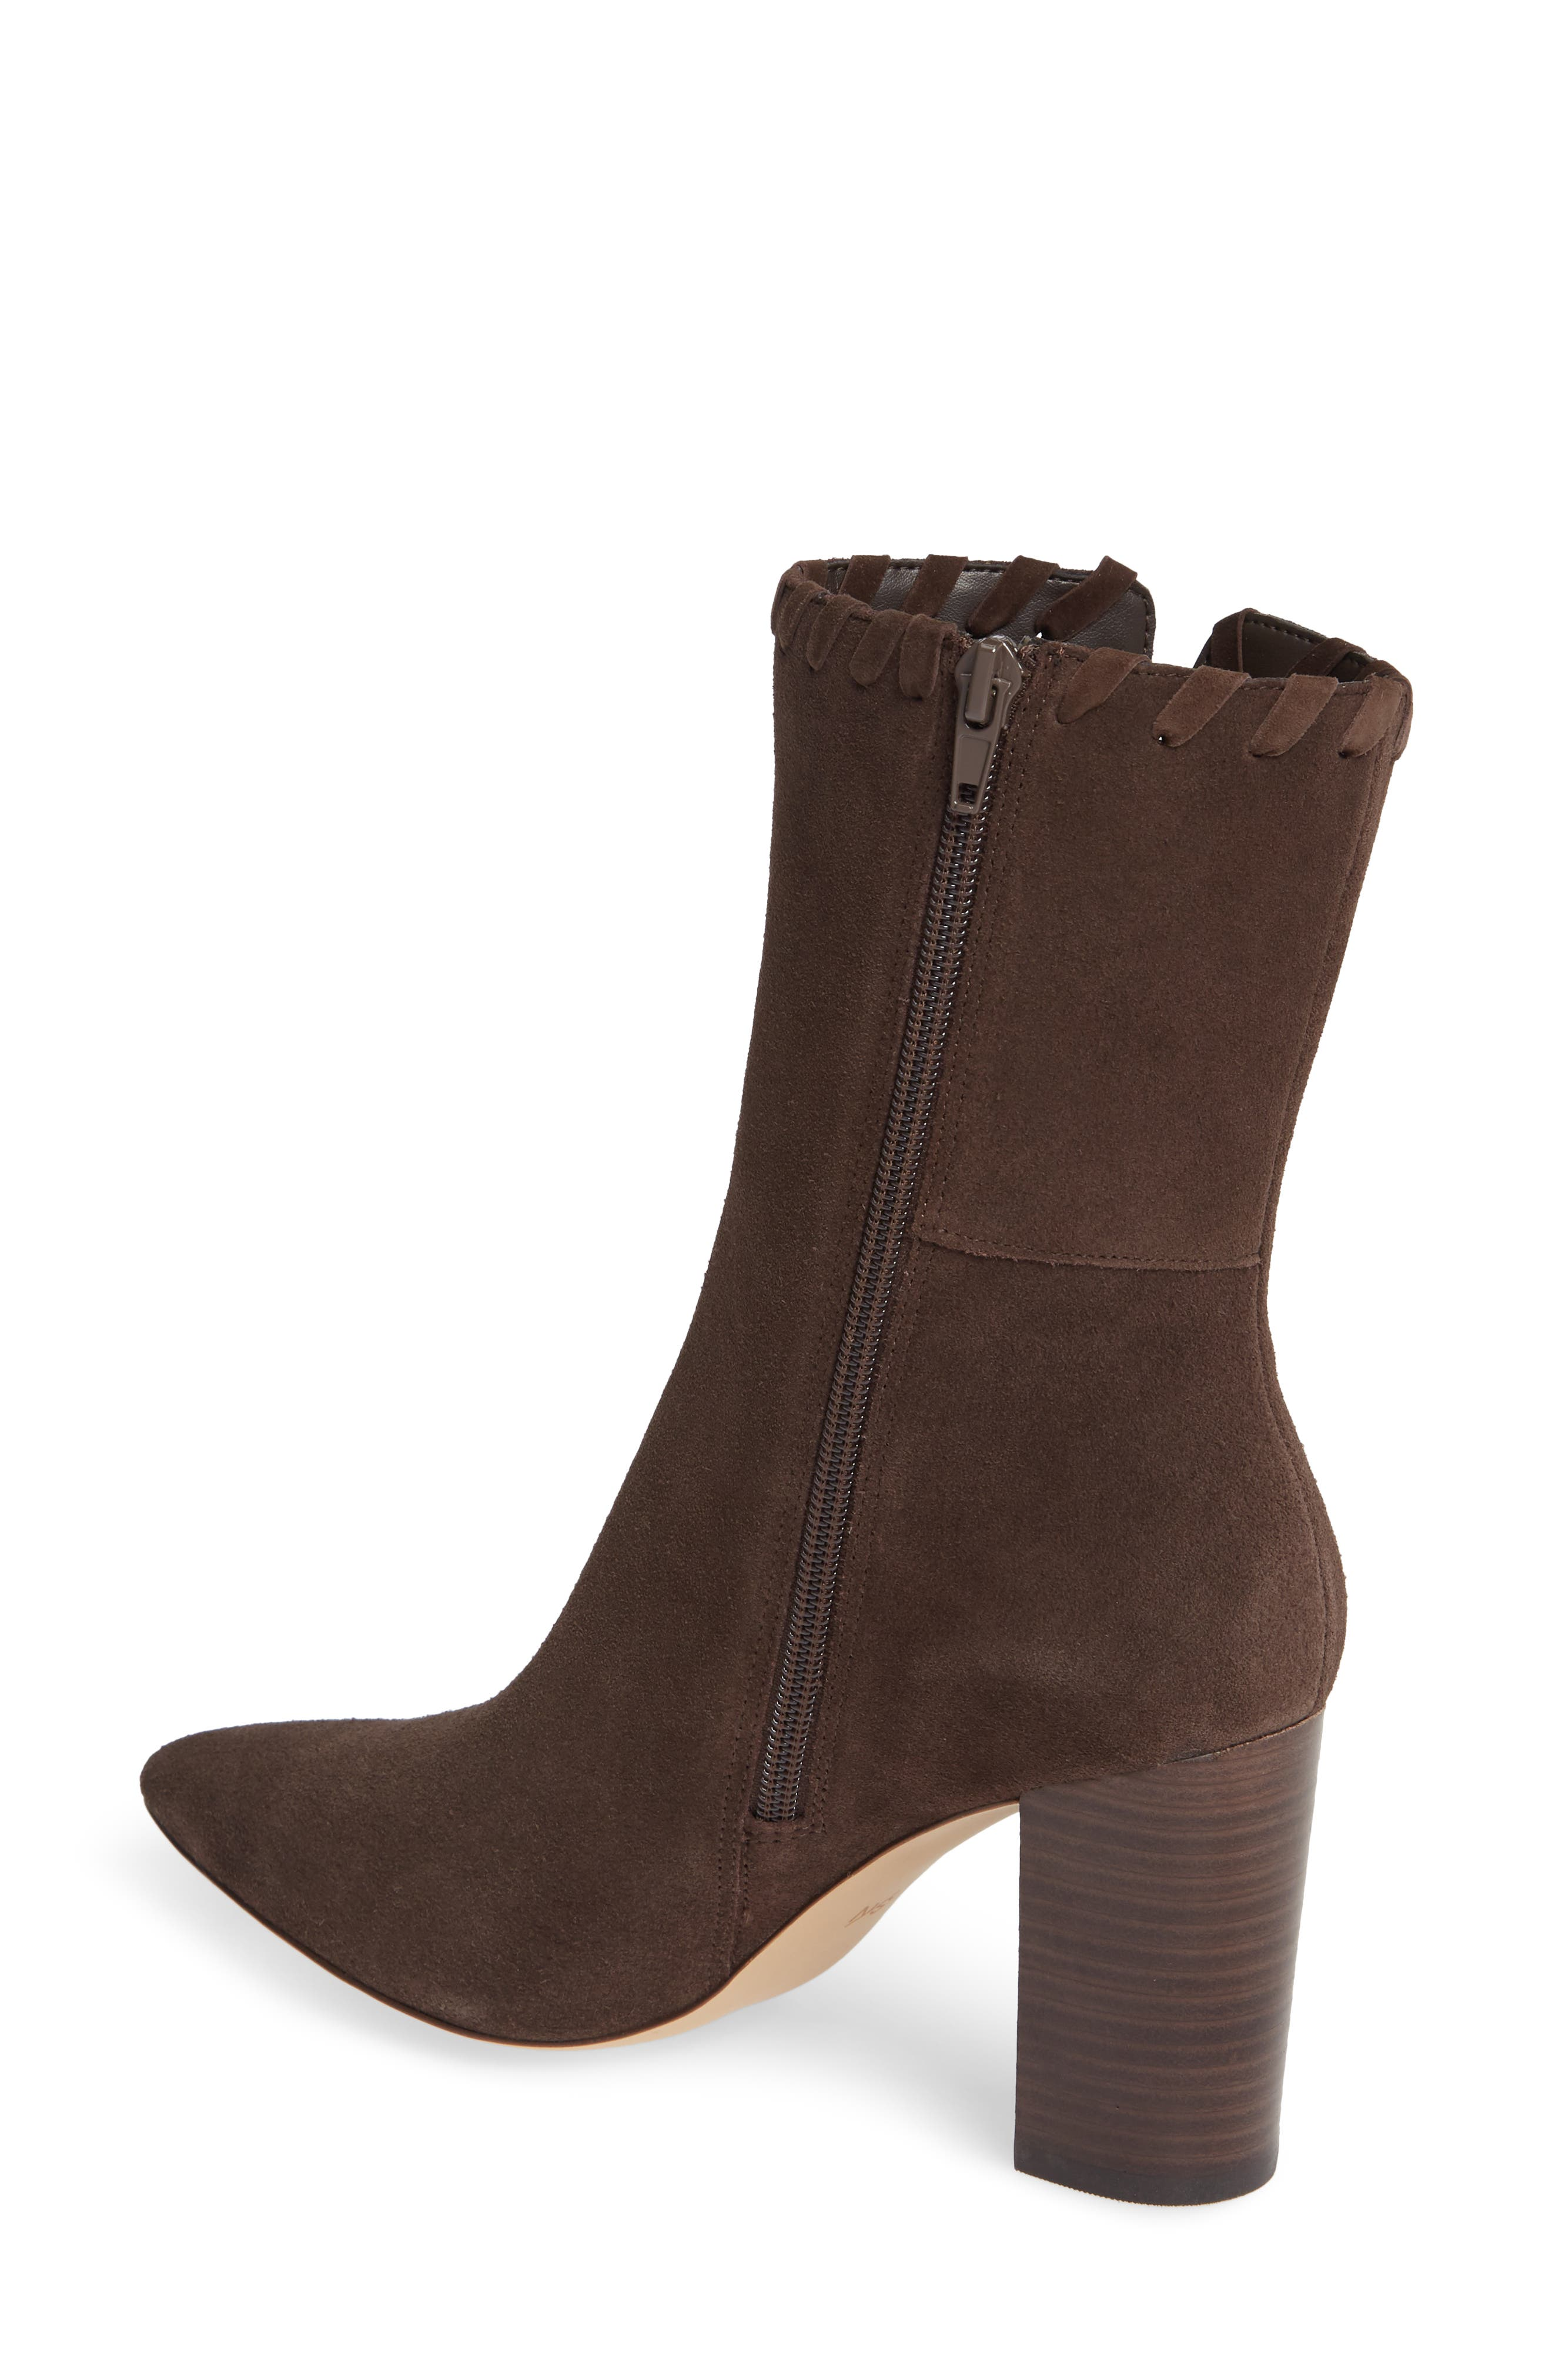 Camilla Bootie,                             Alternate thumbnail 2, color,                             CHOCOLATE SUEDE